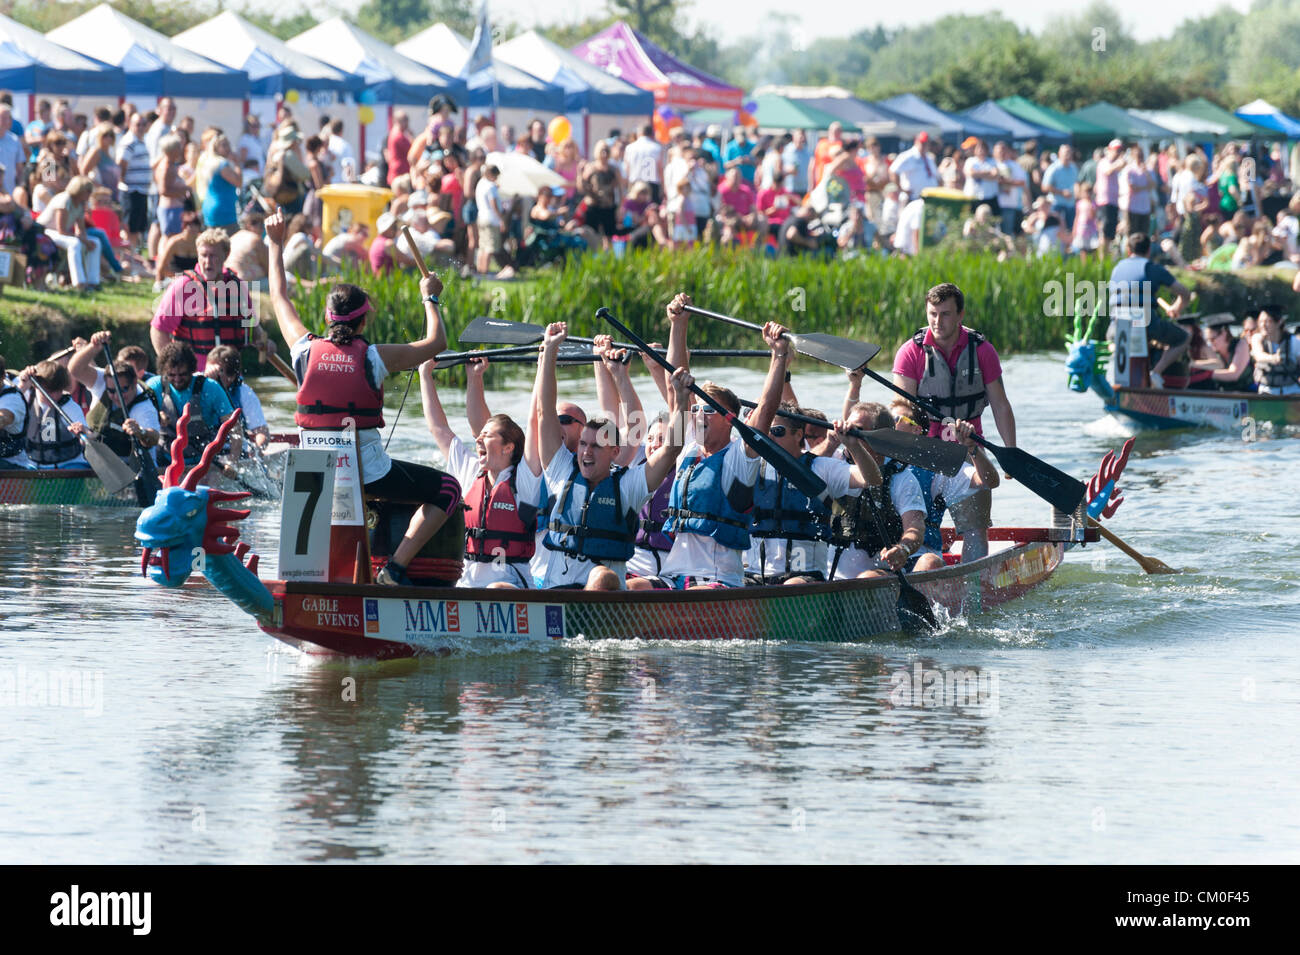 CAmbridge, UK. 8th September 2012. Competitors enjoy the late summer weather at the Cambridge Dragon Boat Festival, Stock Photo